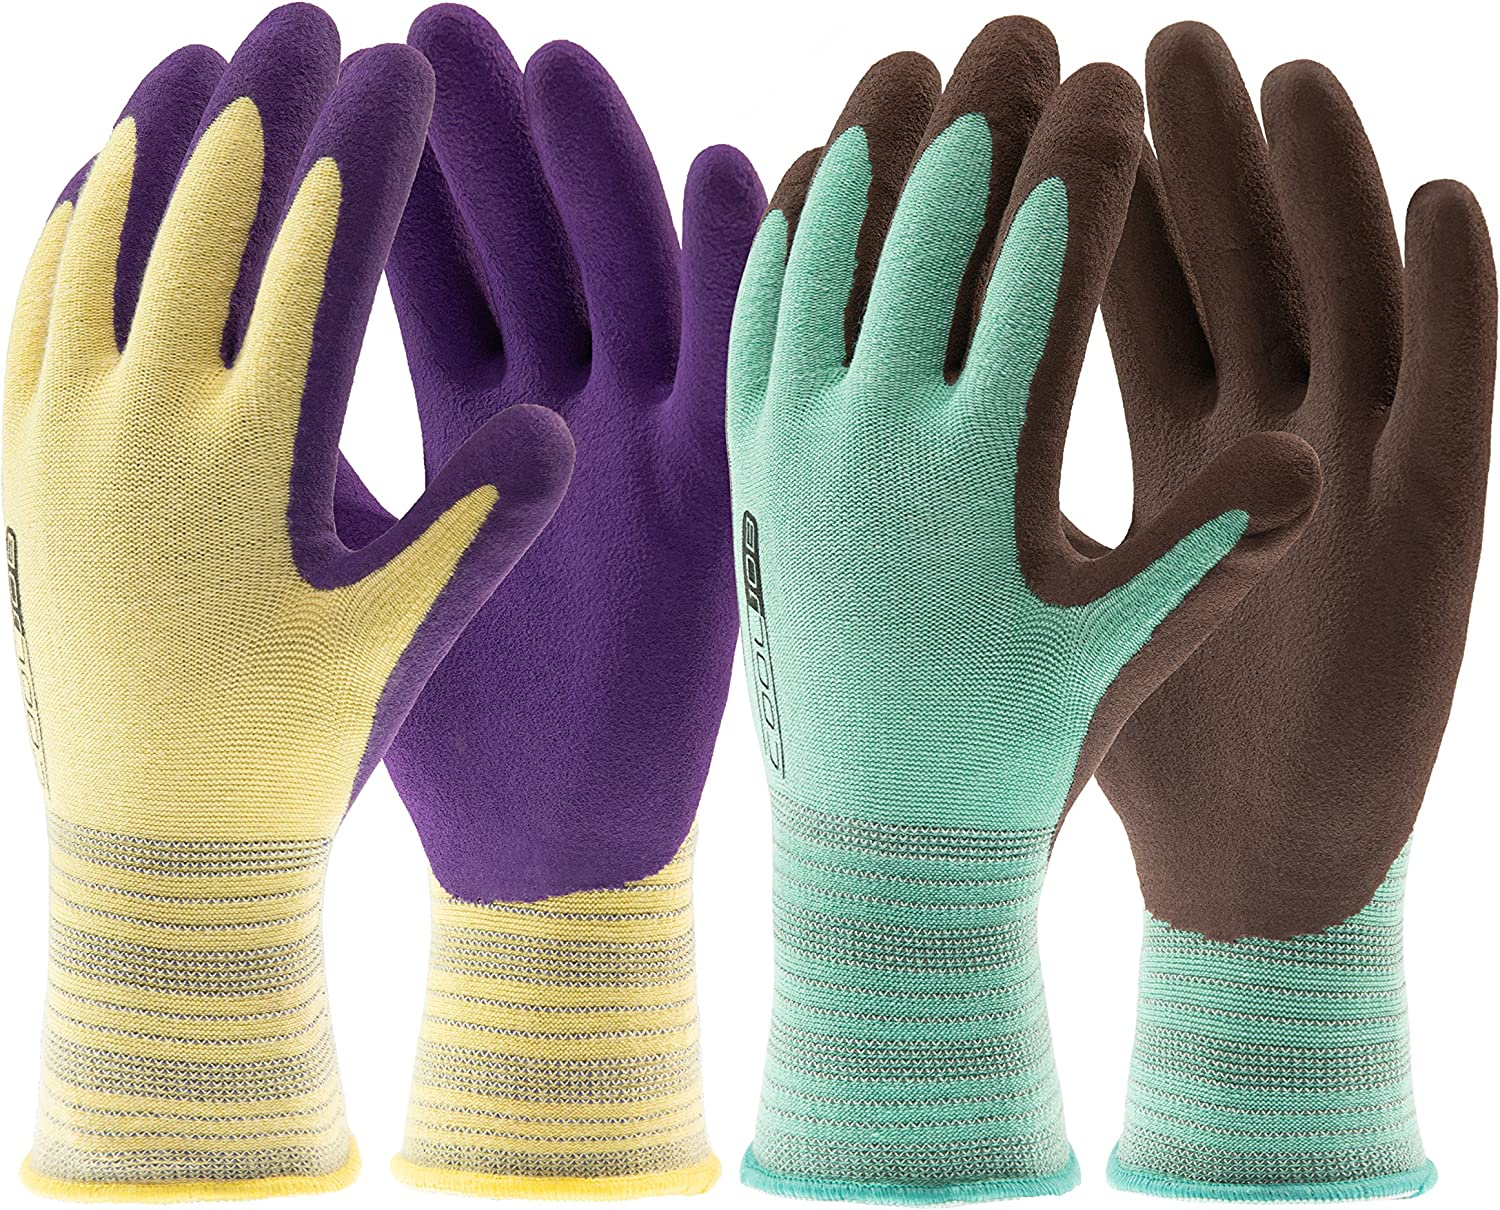 COOLJOB 2 Pairs Gardening Gloves for Max 41% OFF Women Men Easy-to-use Breathable Rubbe